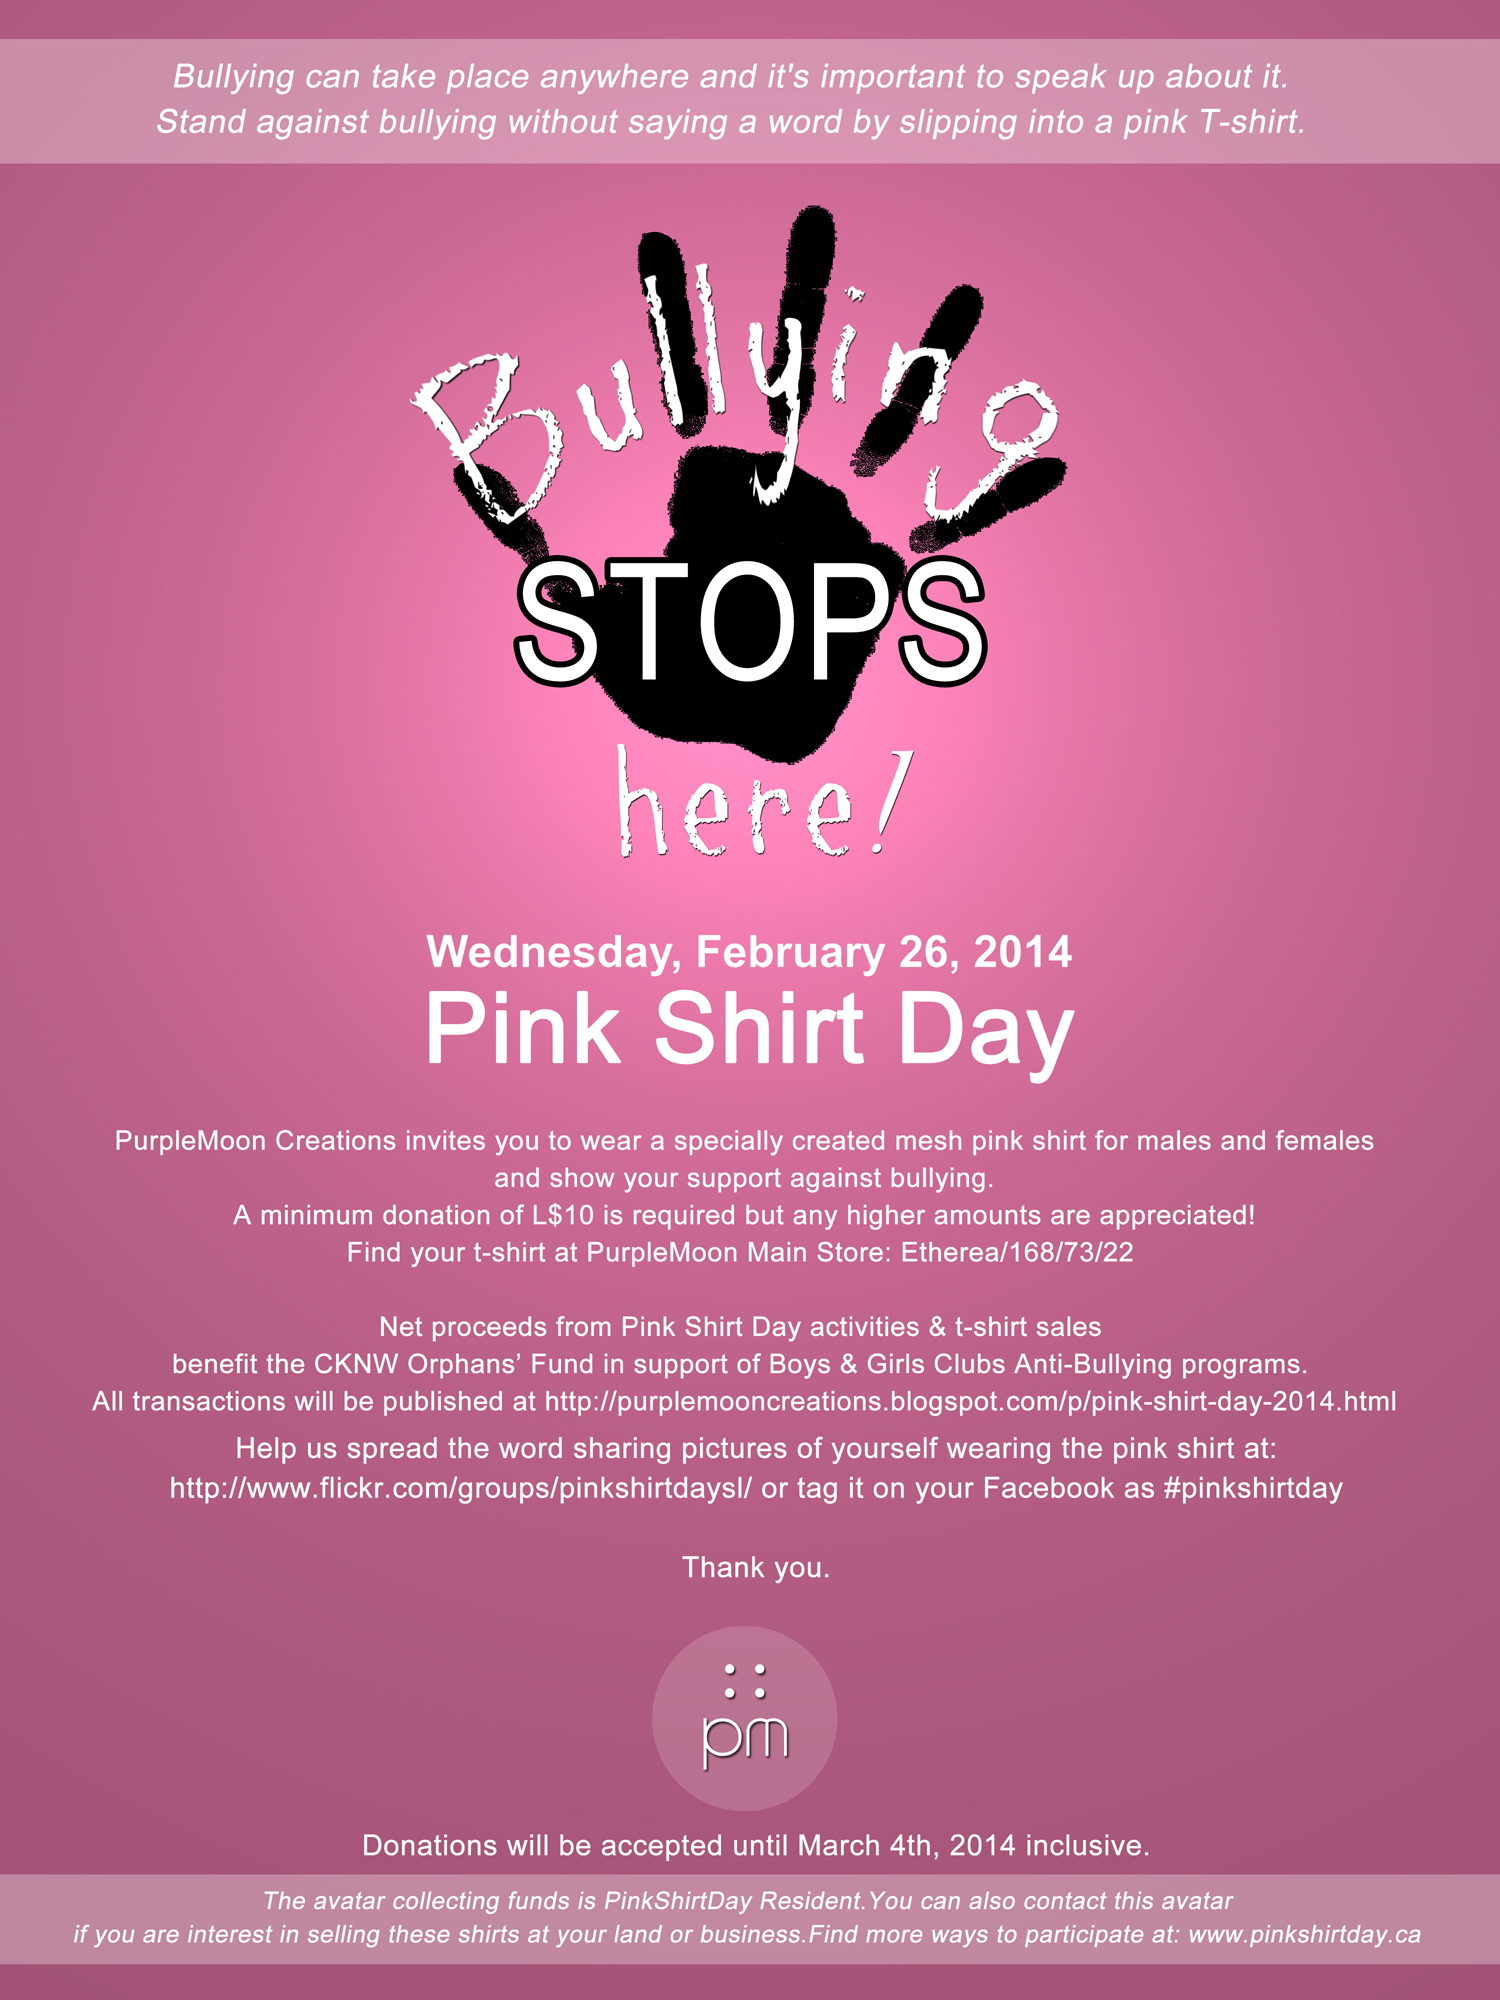 PINK SHIRT DAY - BULLYING STOPS HERE! - February 26th, 2014